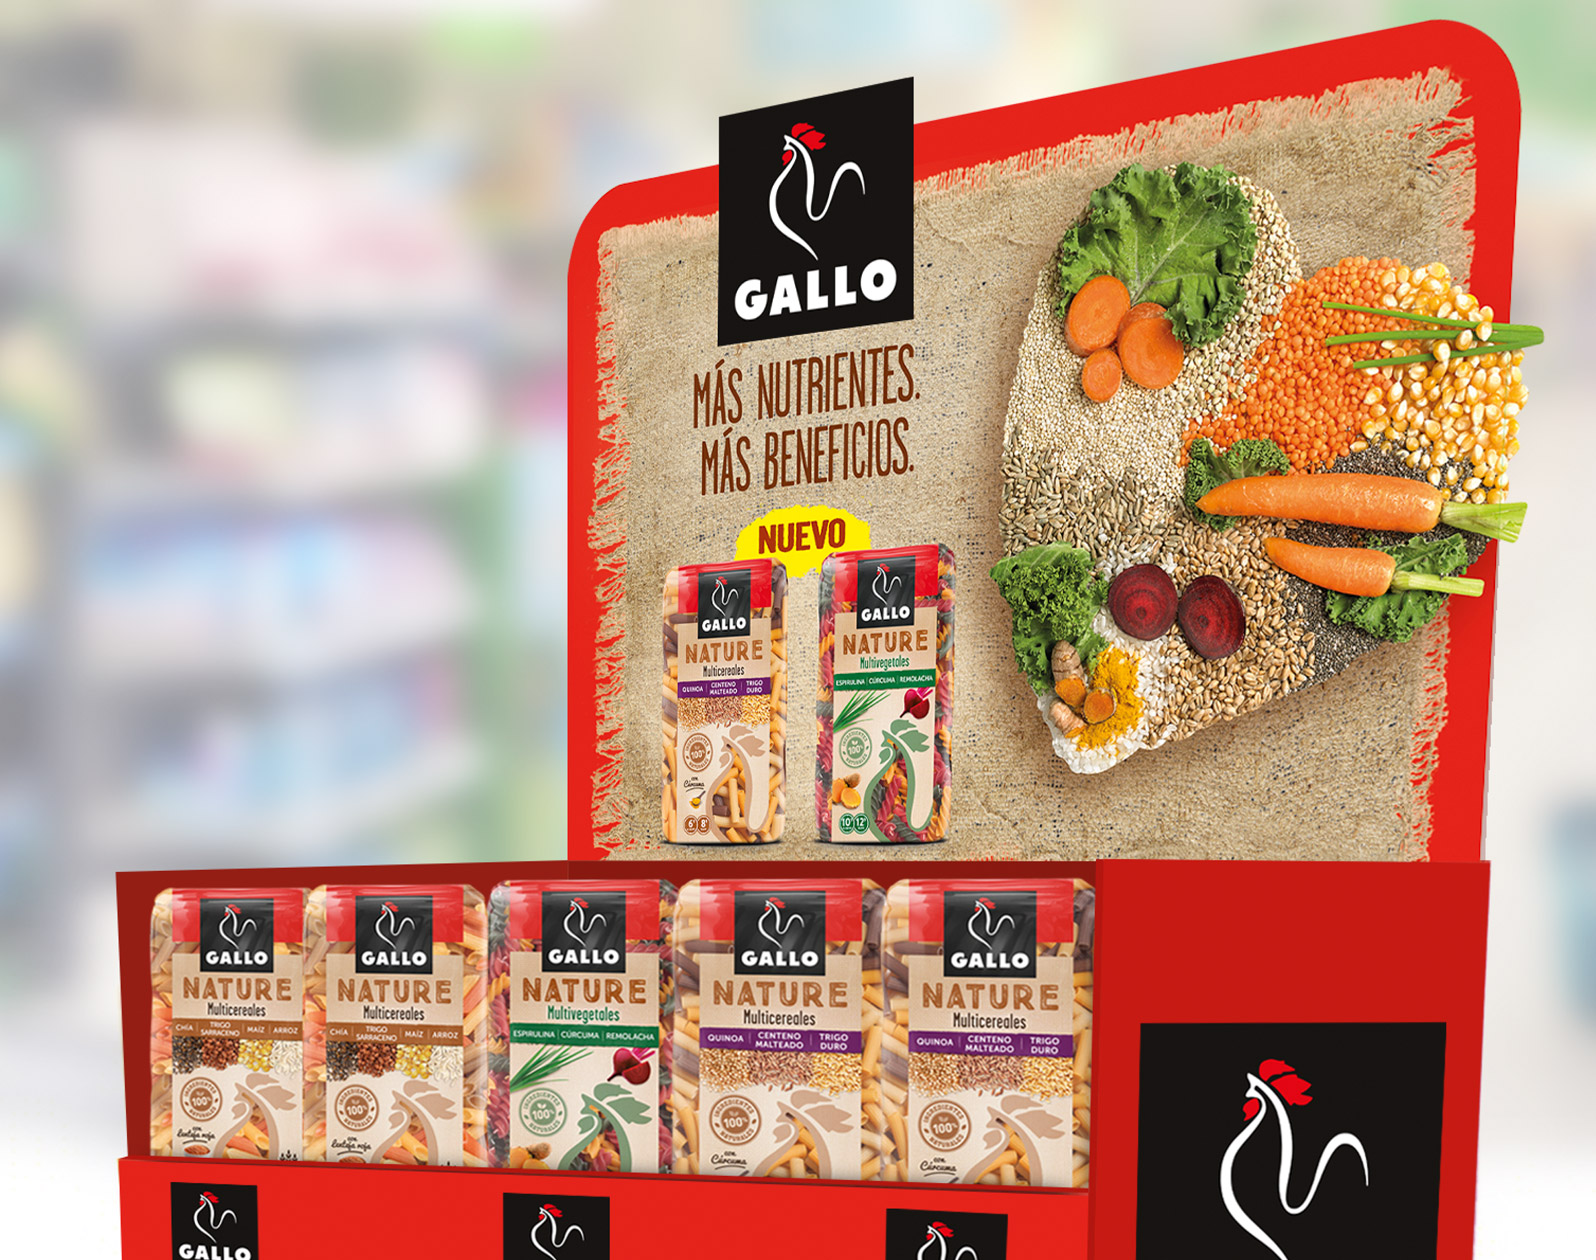 Pastas Gallo - Communication on point of sale Gallo Nature